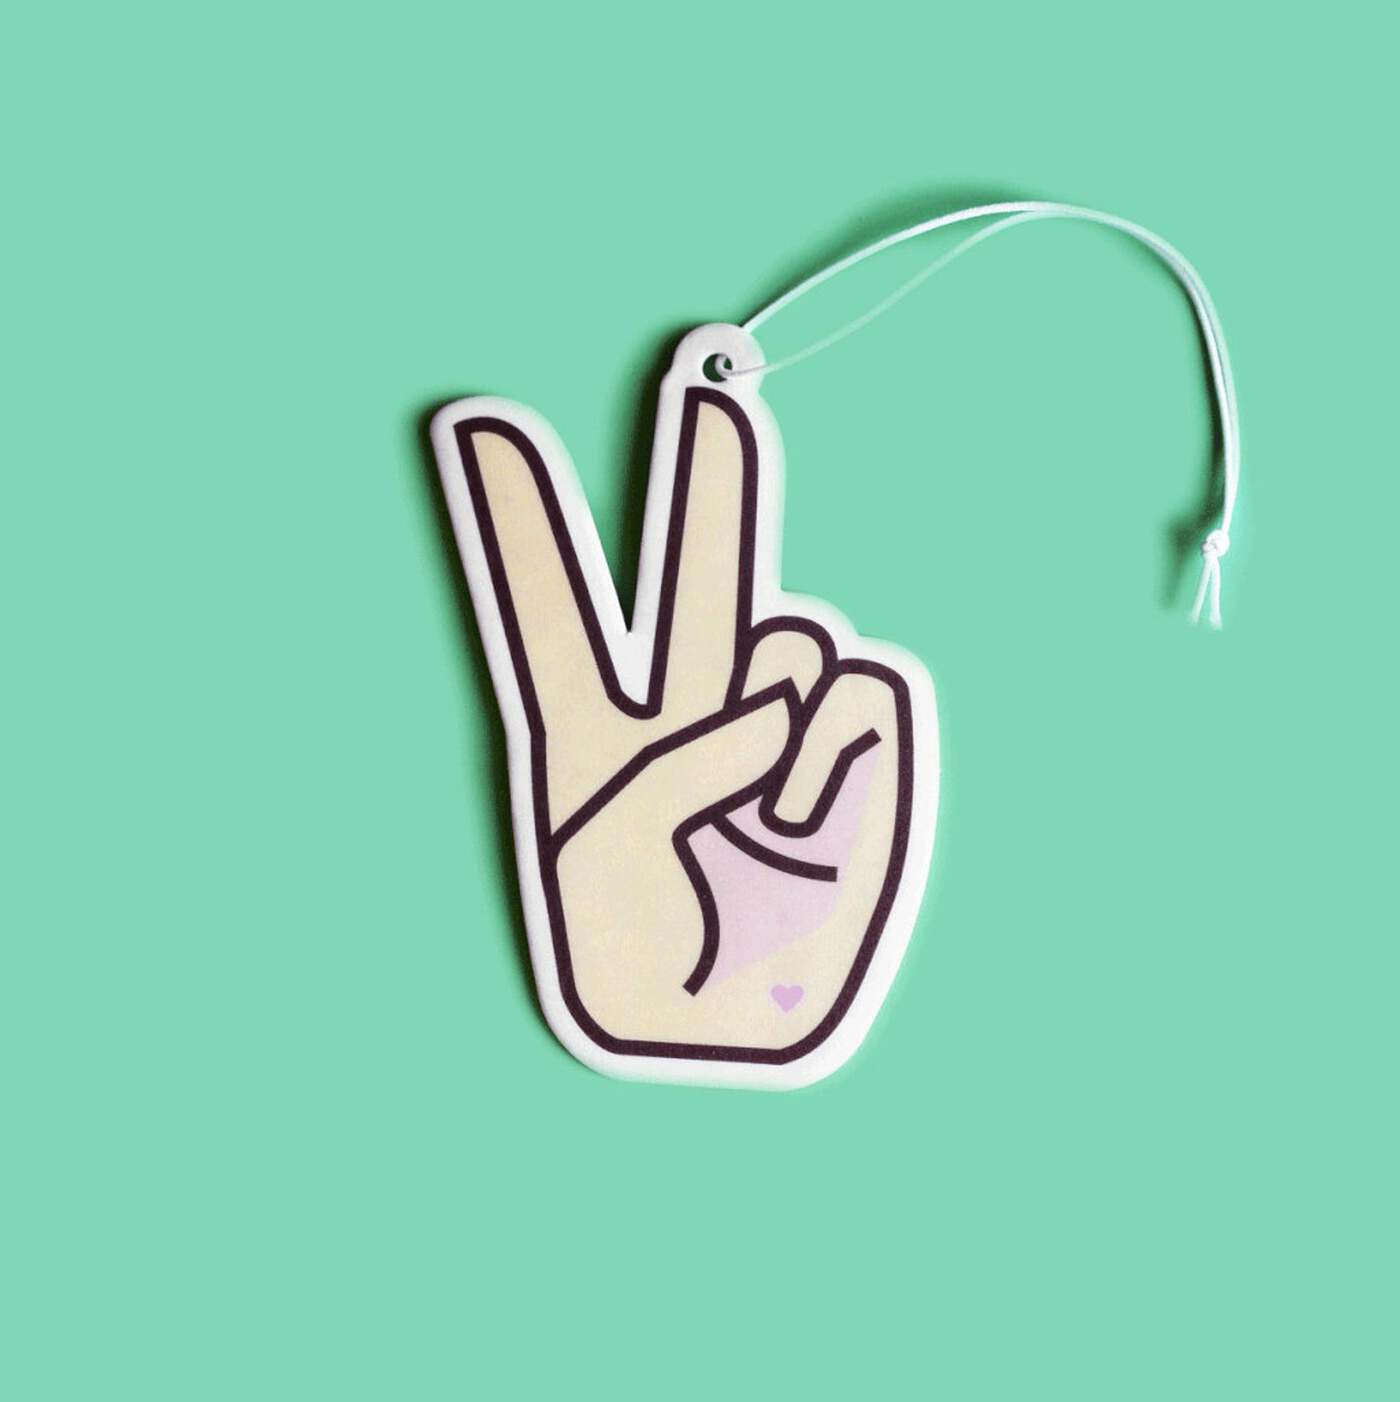 photo of peace sign air freshener